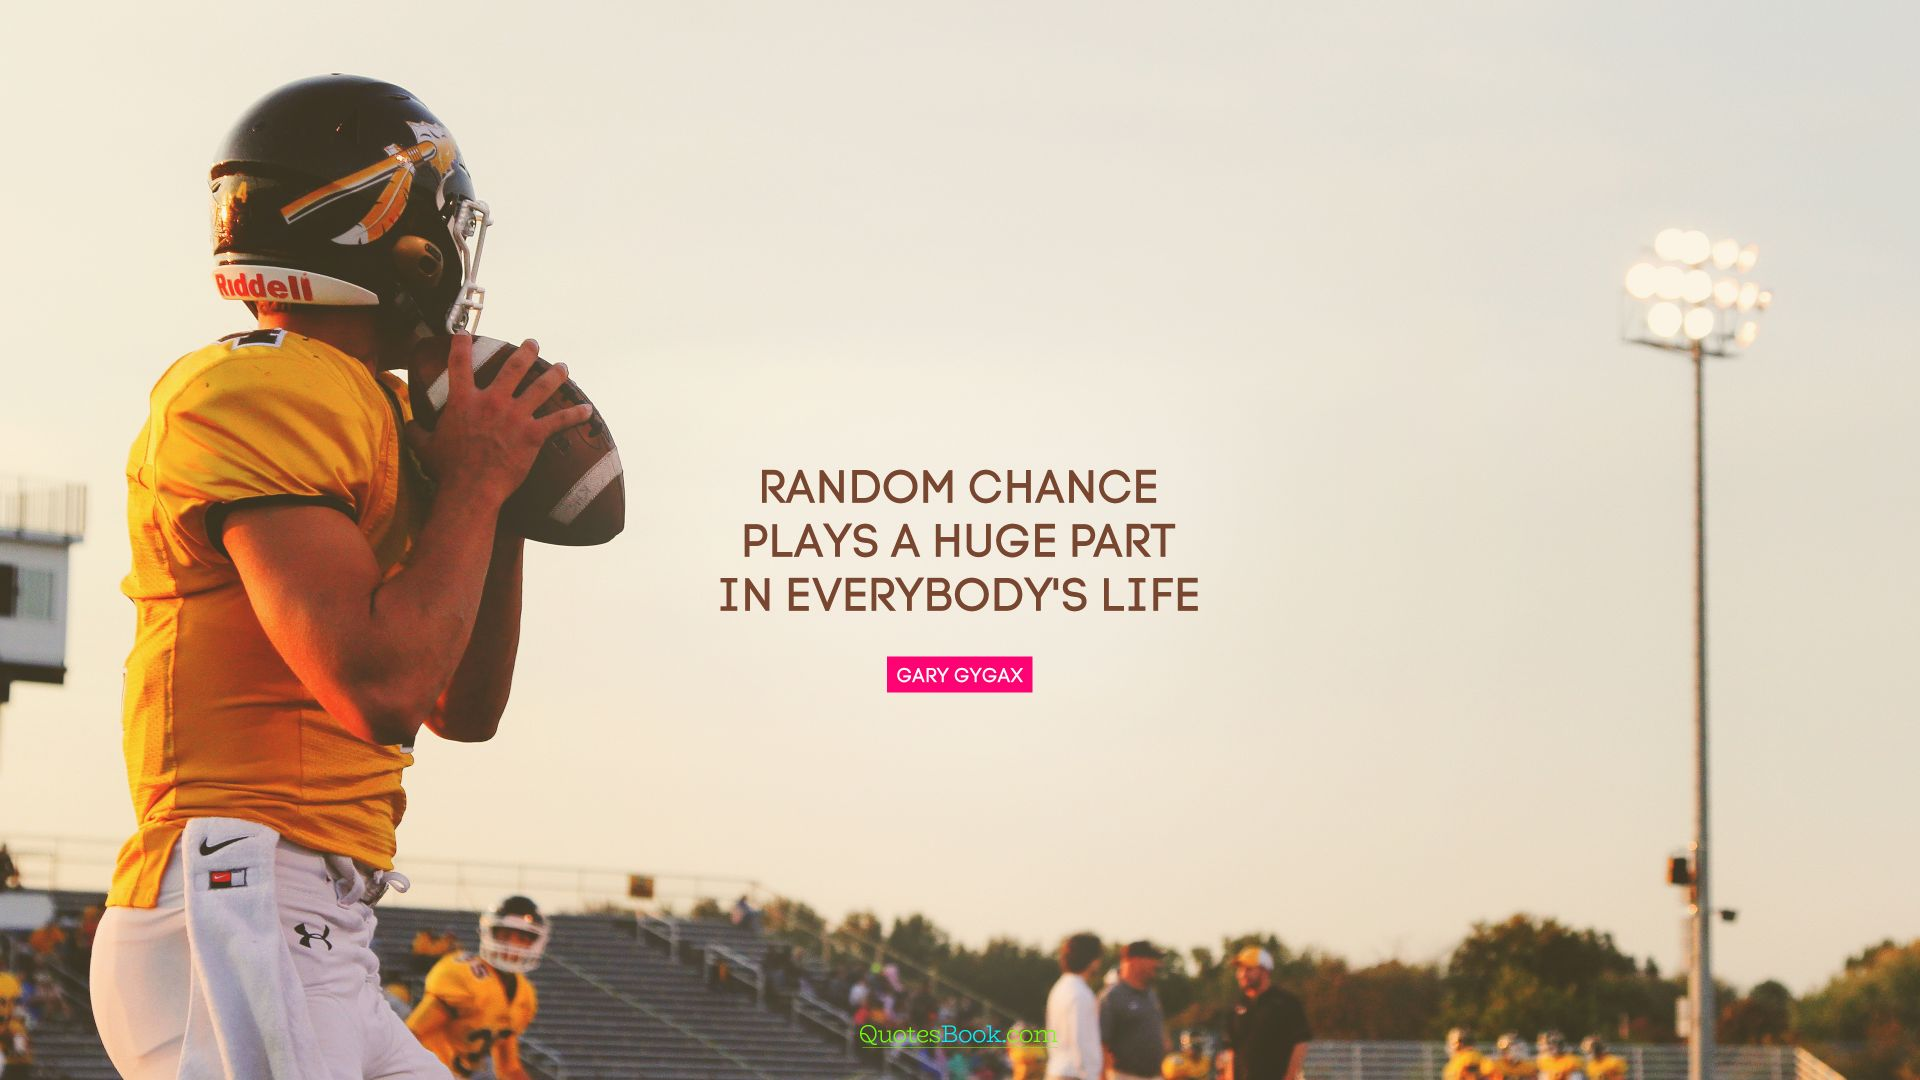 Random chance plays a huge part in everybody's life. - Quote by Gary Gygax